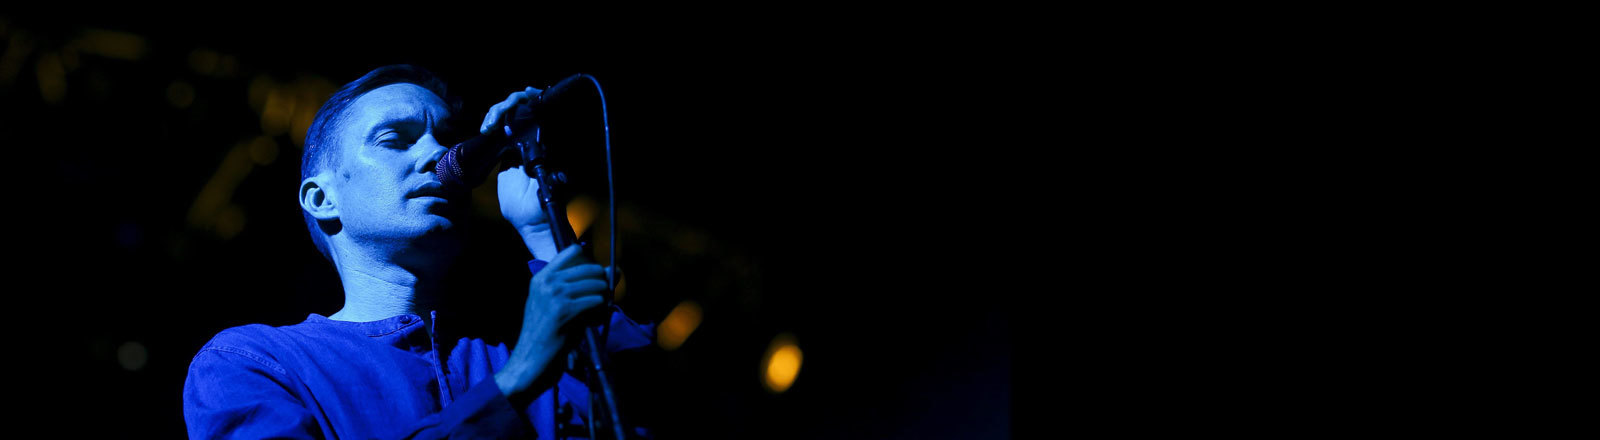 Canadian singer Mike Milosh of US musical group 'Rhye' performs during a concert at the Super Bock Super Rock Festival in Lisbon, Portugal, 15 July 2016. The festival runs from 14 to 16 July.